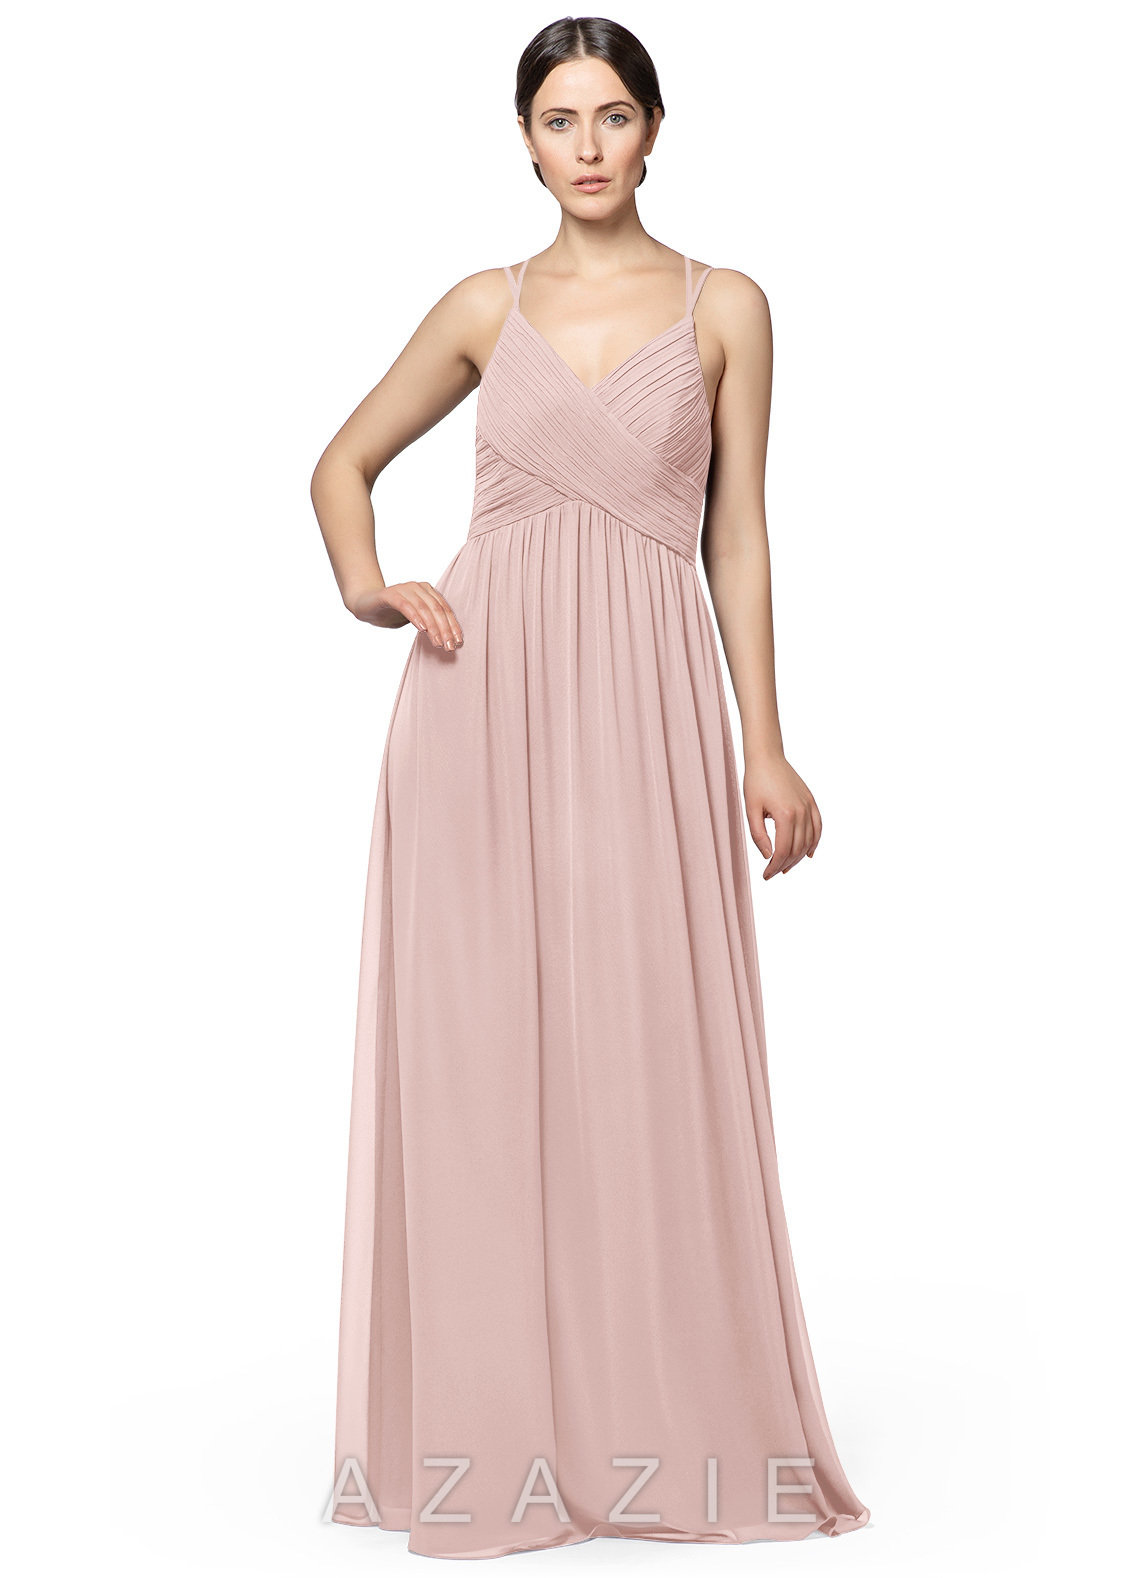 2dbad40ae76 Azazie Nirene Bridesmaid Dresses